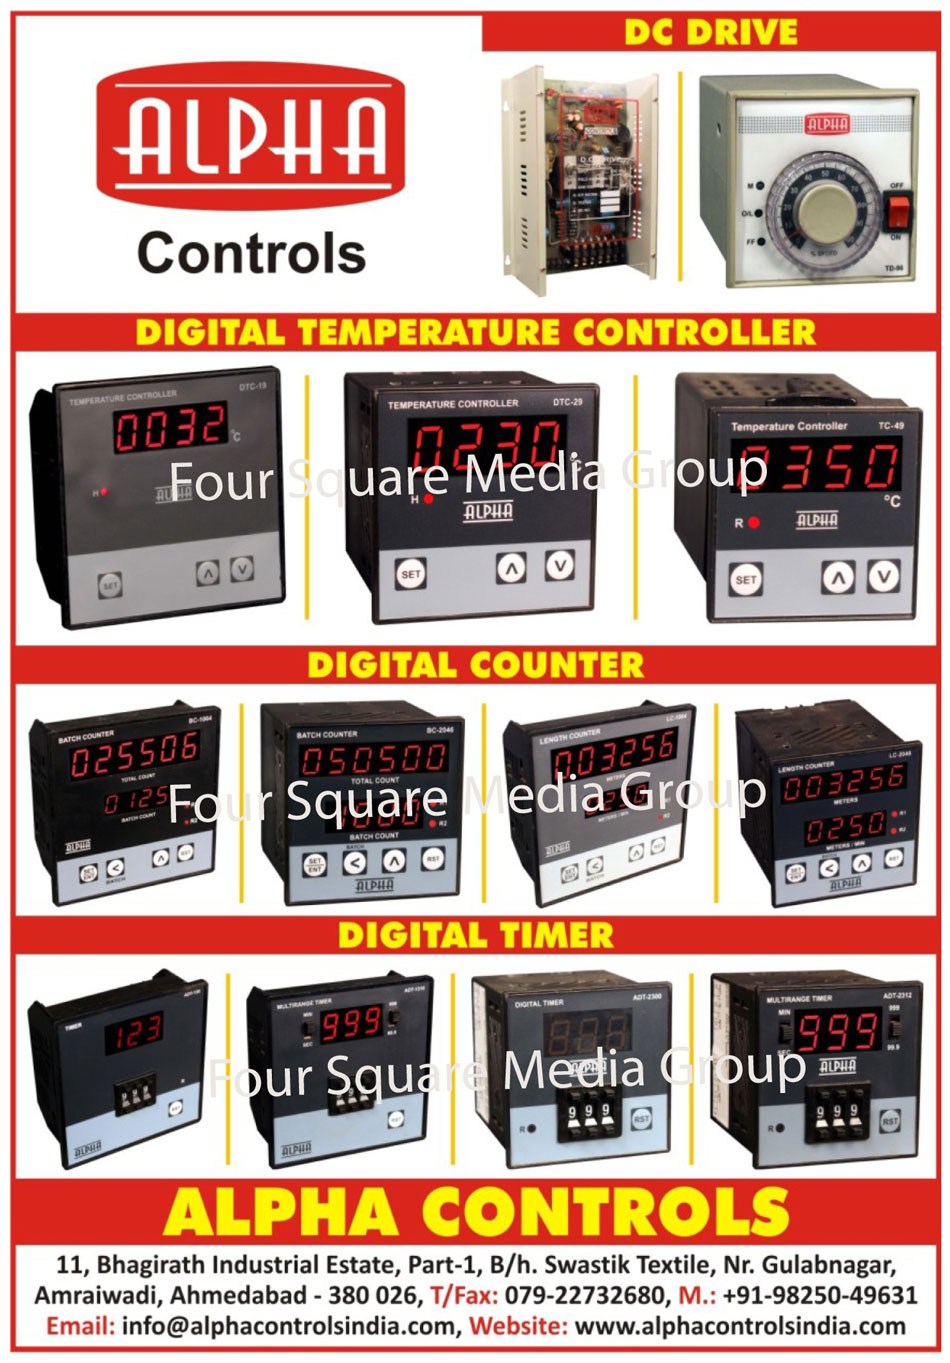 DC Drivers, Digital Temperature Controllers, Digital Counters, Digital Timers, DC Drives